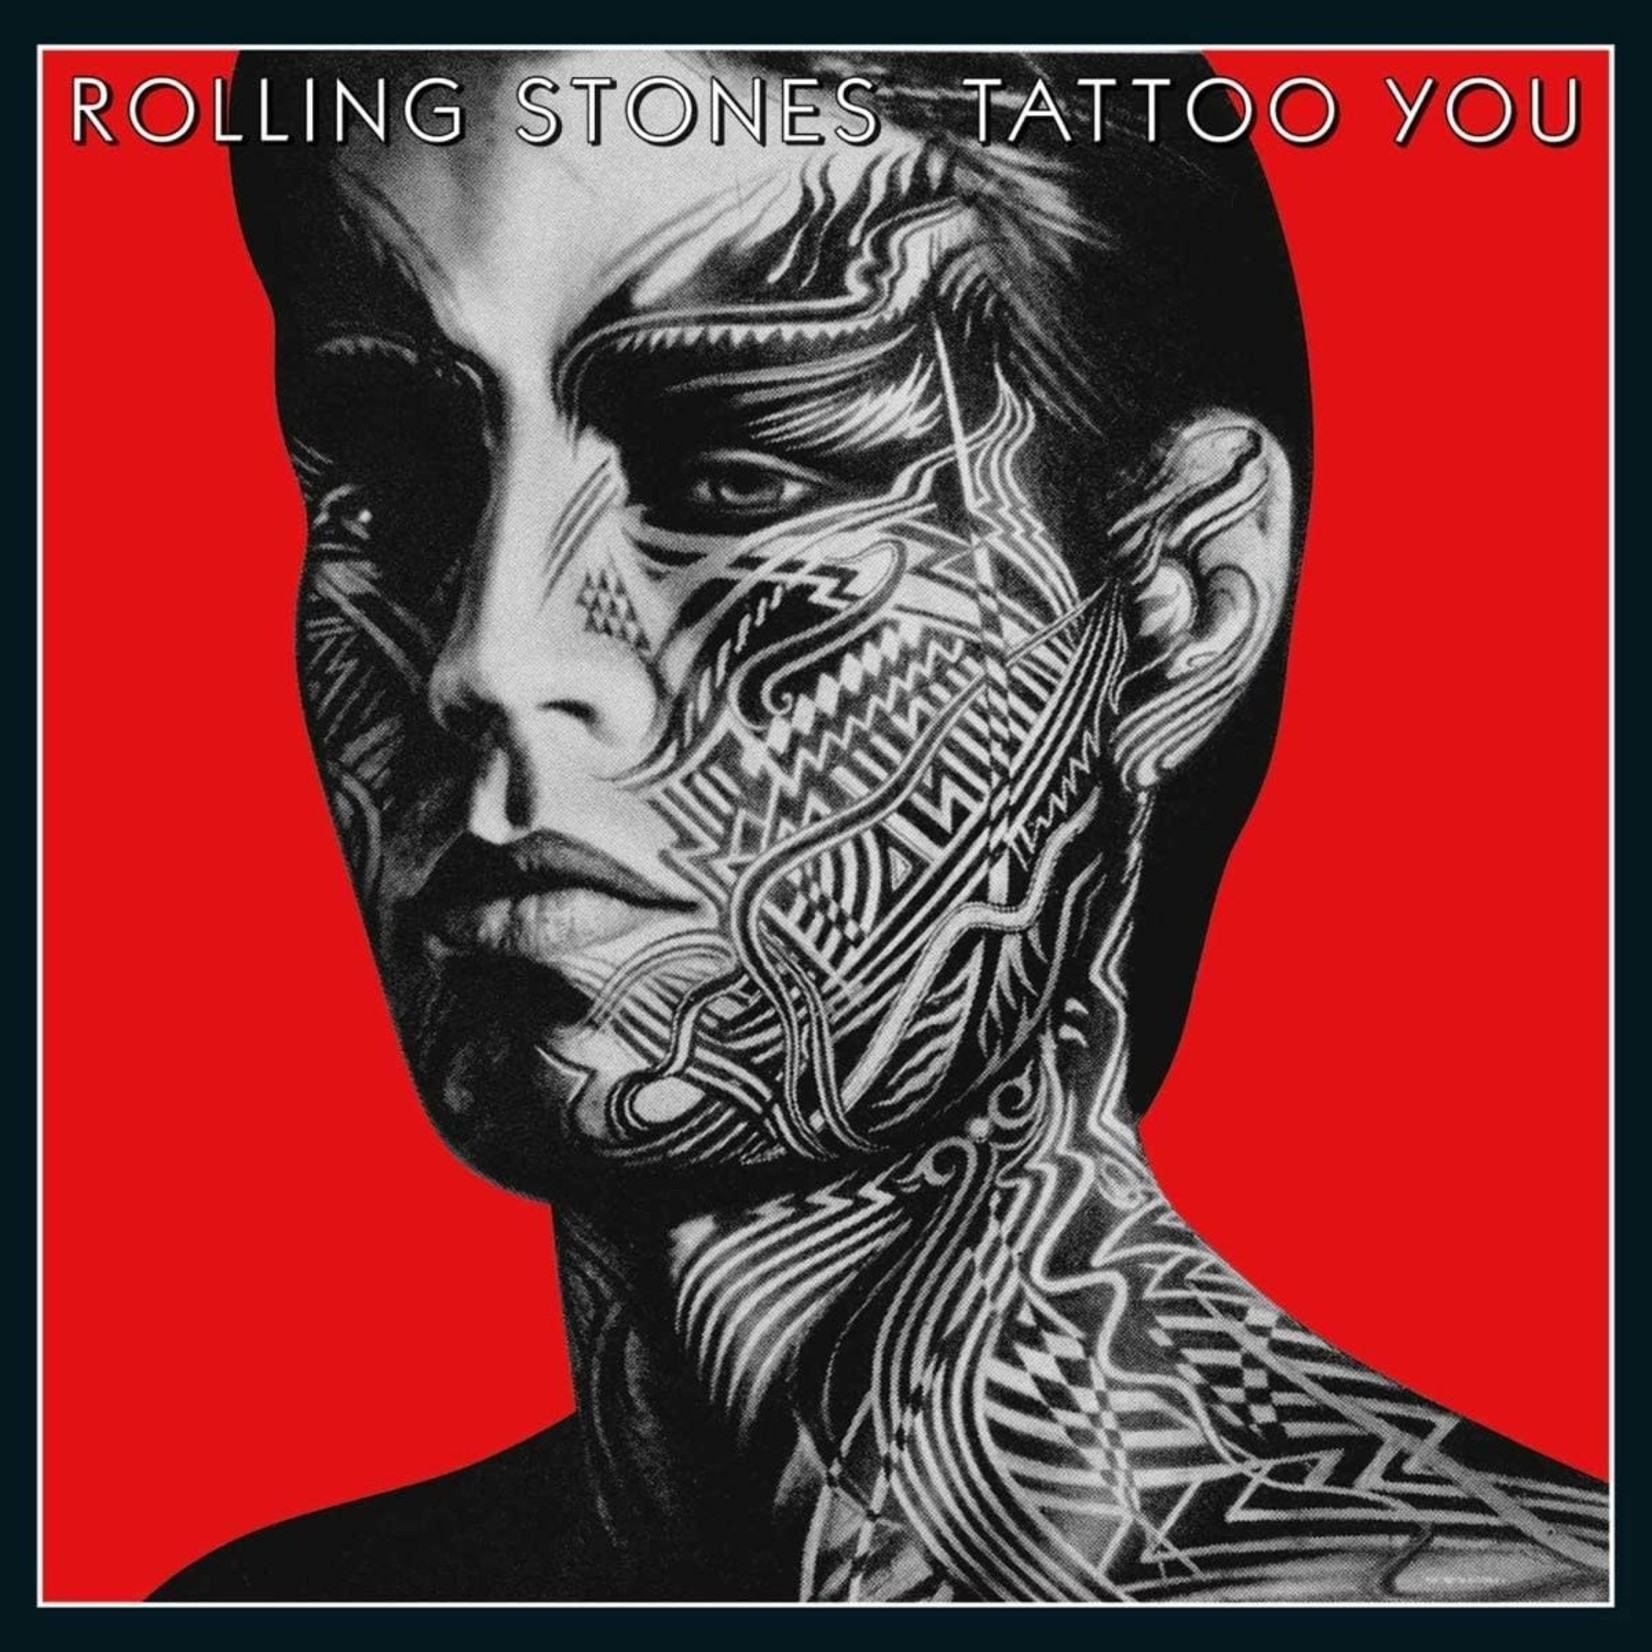 [Vintage] Rolling Stones: Tattoo You